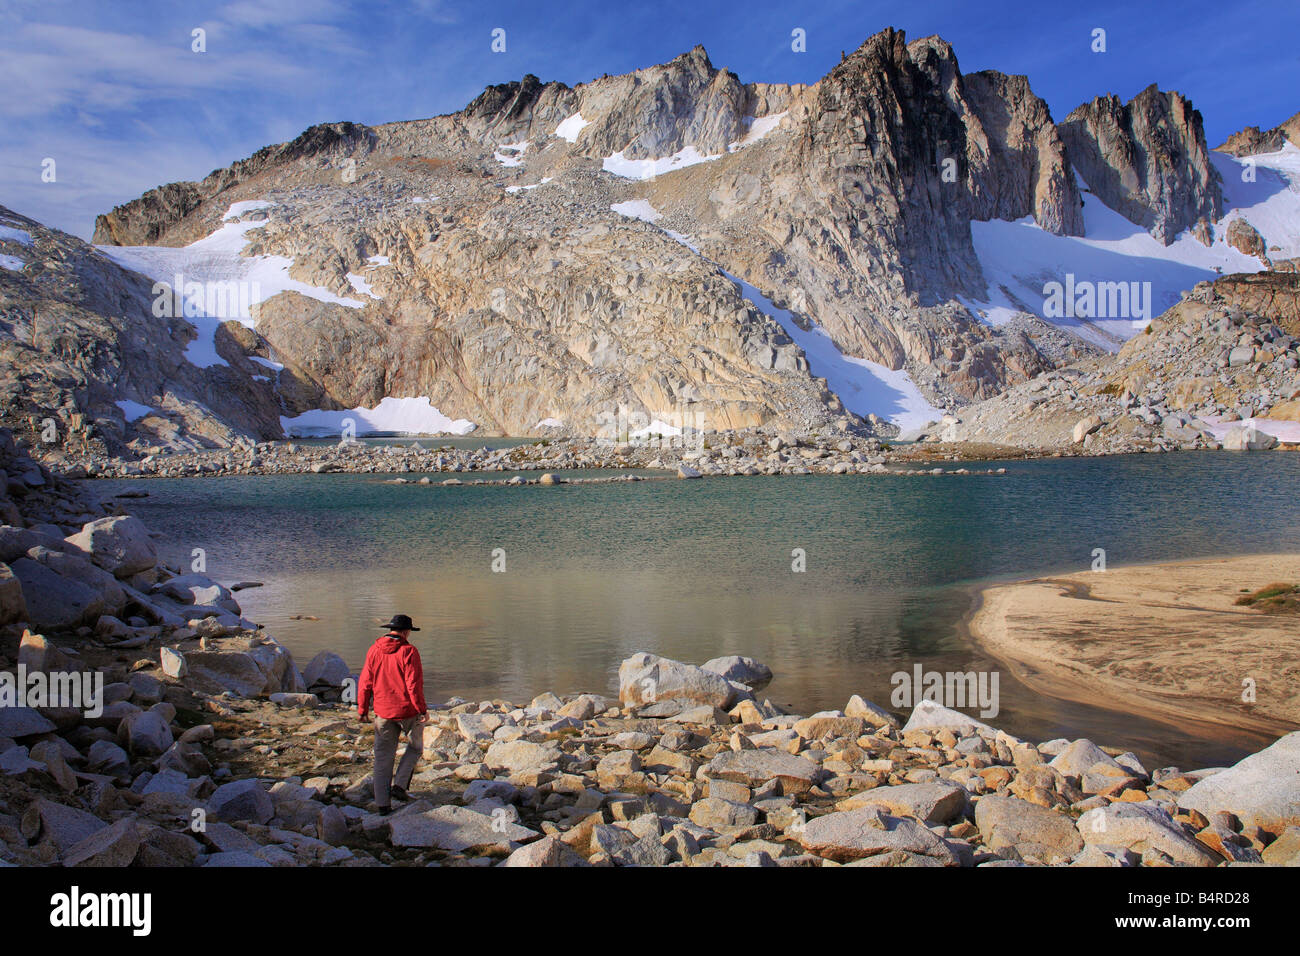 Hiker at Isolation Lake in the Upper Enchantment Lakes area of the Alpine Lakes Wilderness, Washington - Stock Image